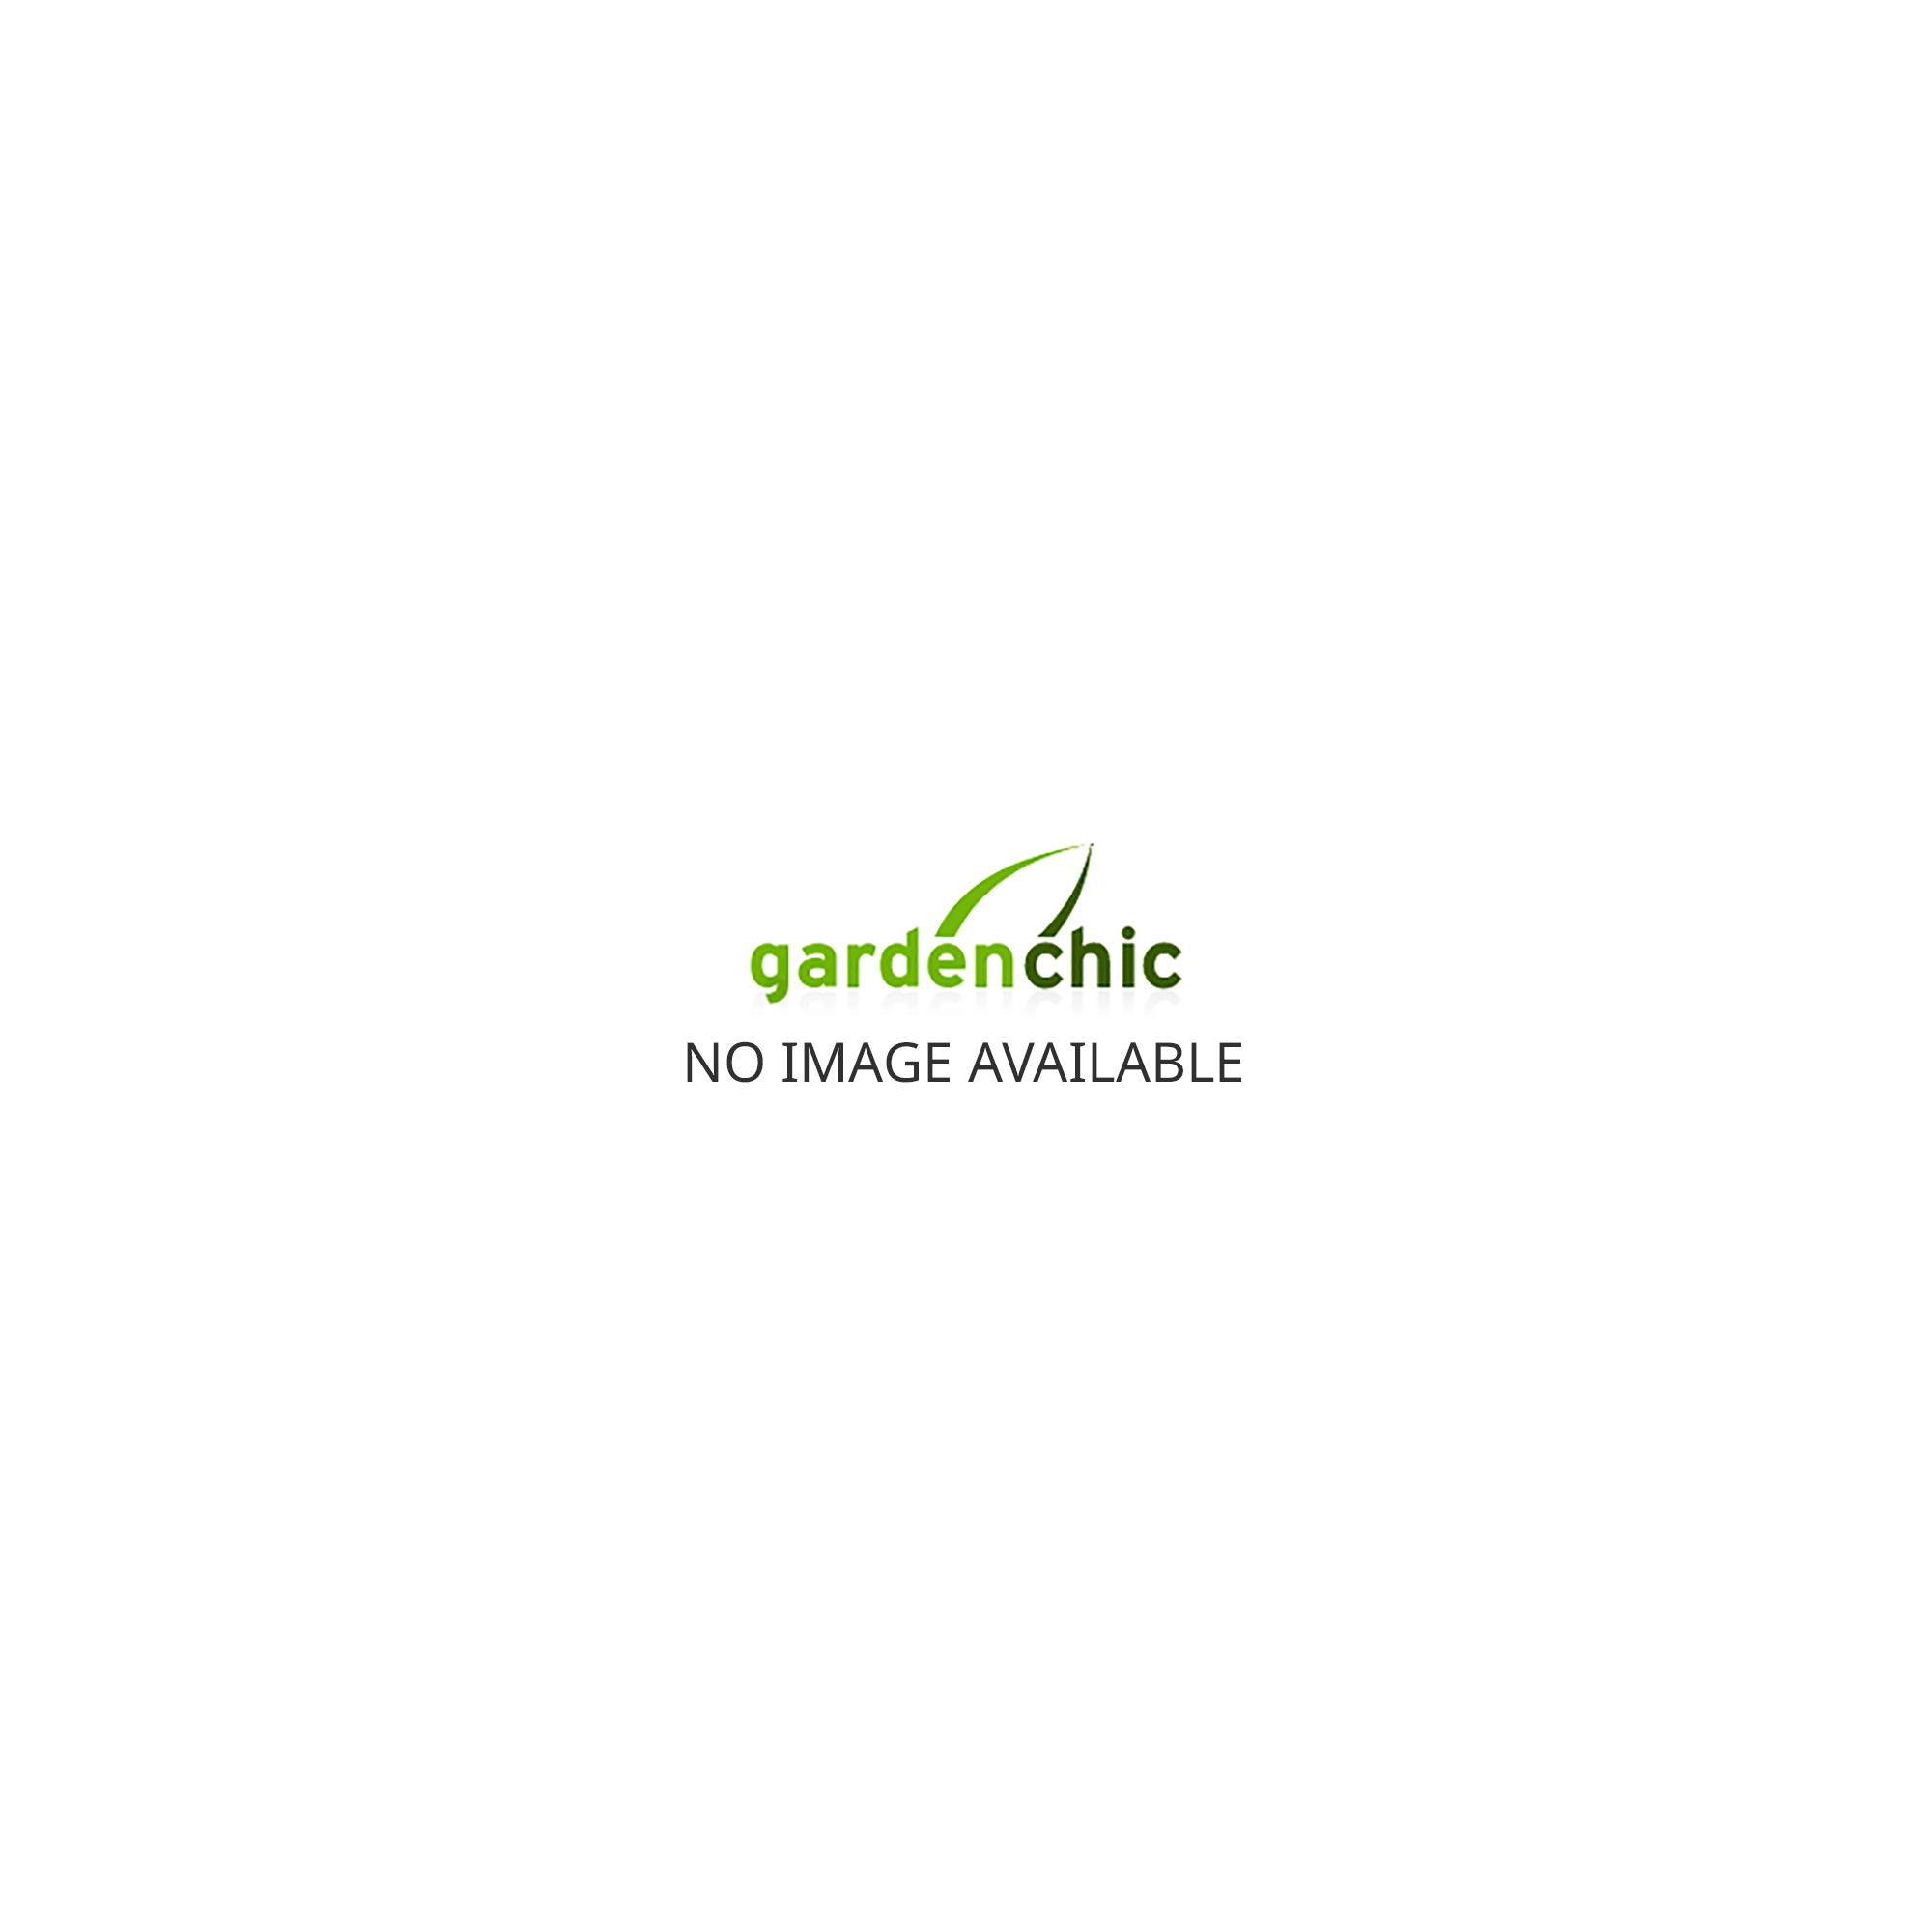 Broadway 8 x 4 Lean-To Greenhouse (Black) FREE Waterbutt, Connection Kit and Blinds until May 2018